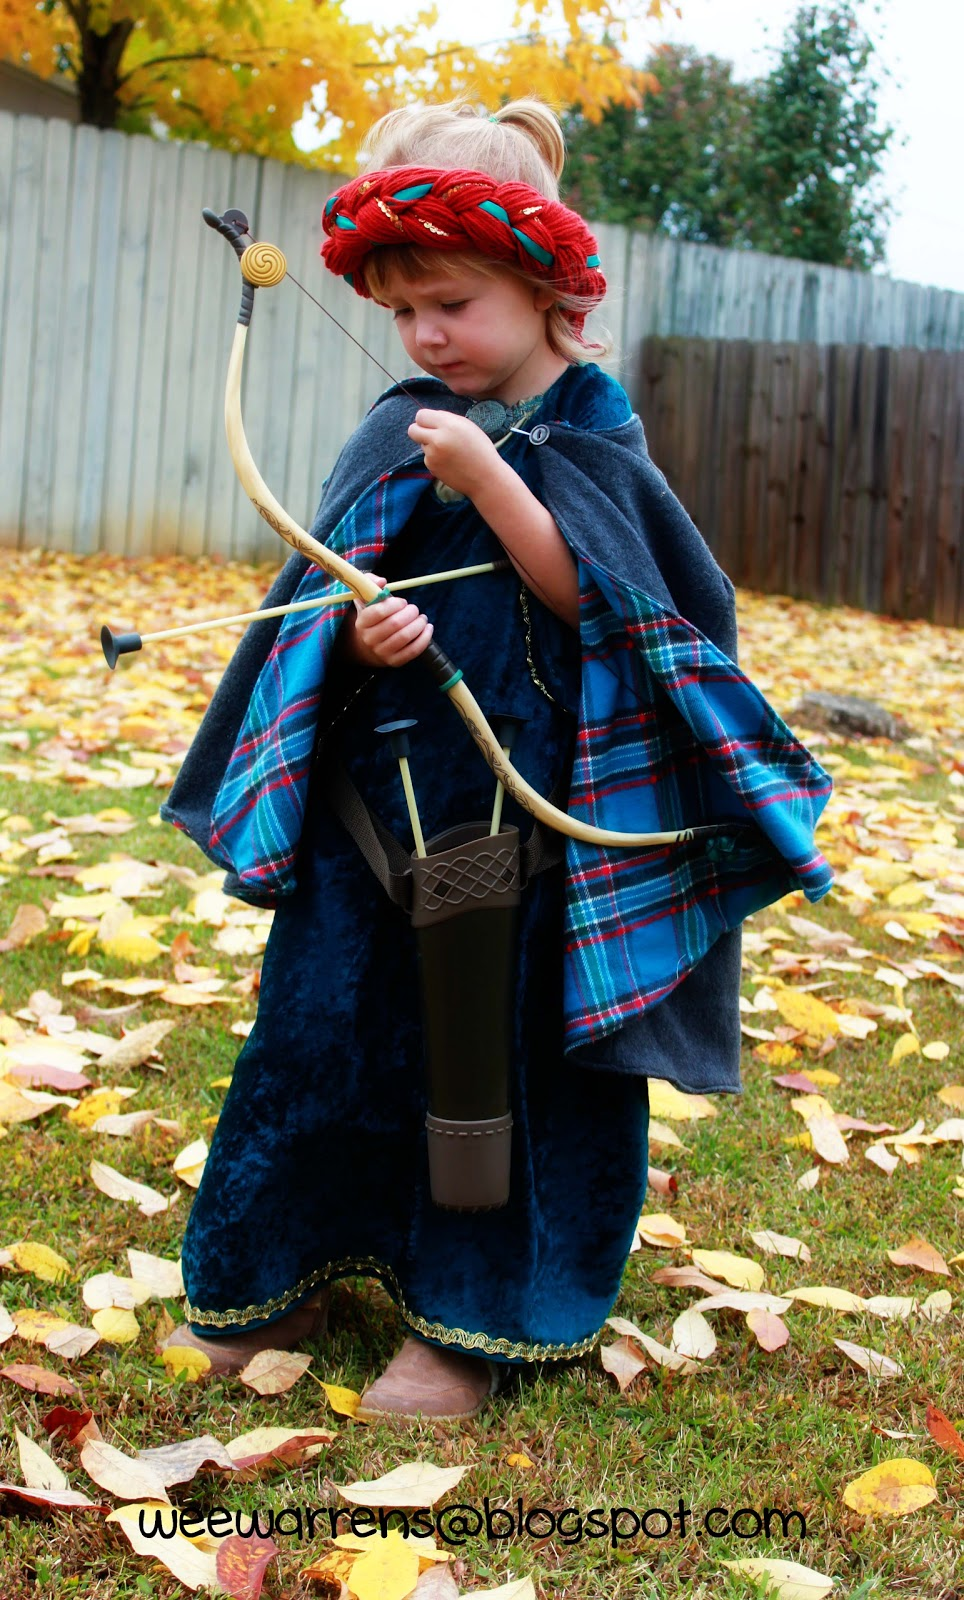 Wee warrens halloween costumes braves merida and baby bear halloween costumes braves merida and baby bear costume using free patterns bankloansurffo Image collections